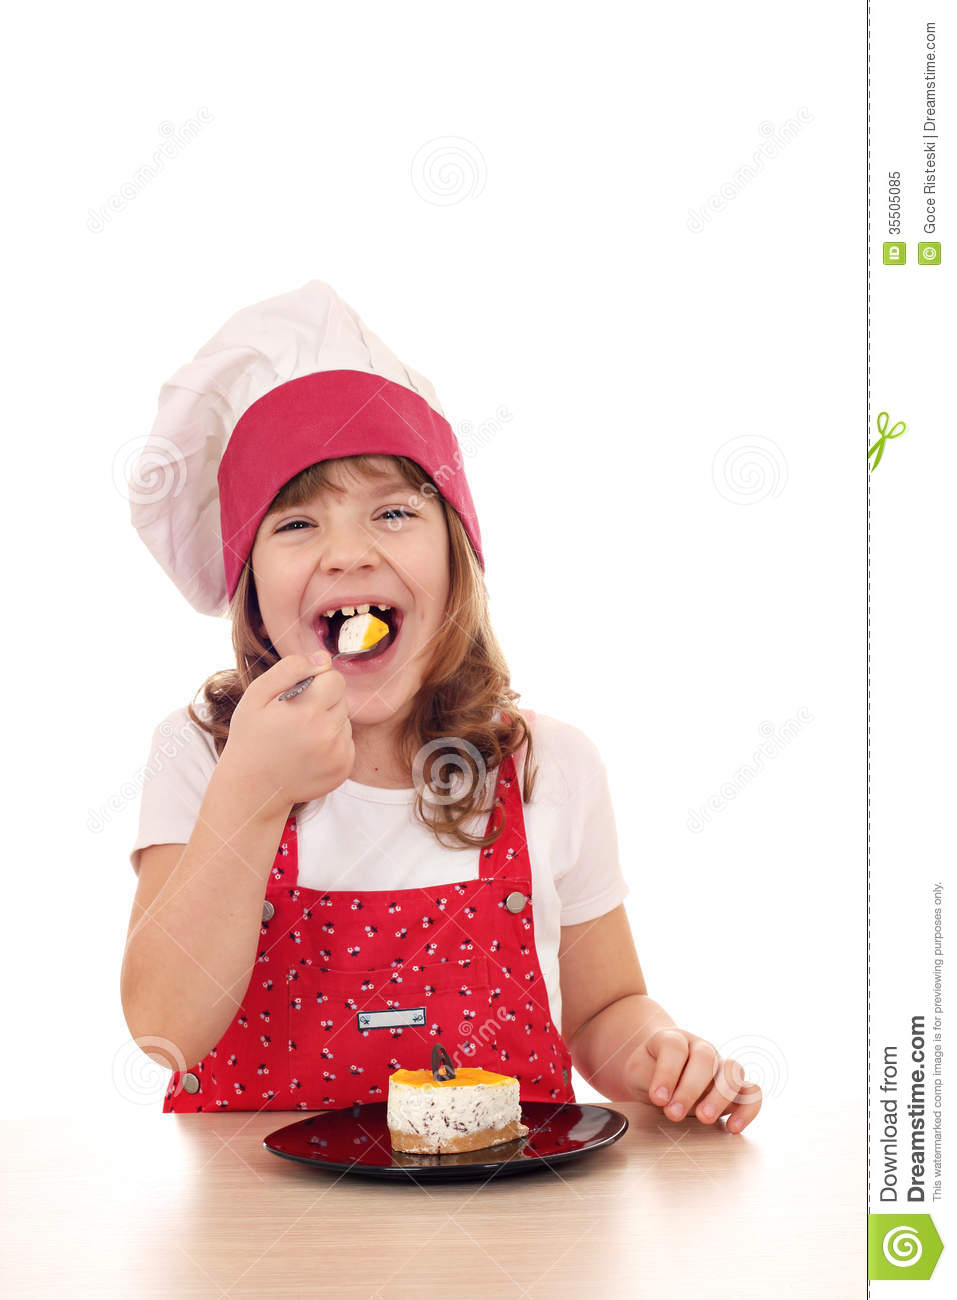 Little Cook Girl Eat Cake Stock Image Image Of Culinary